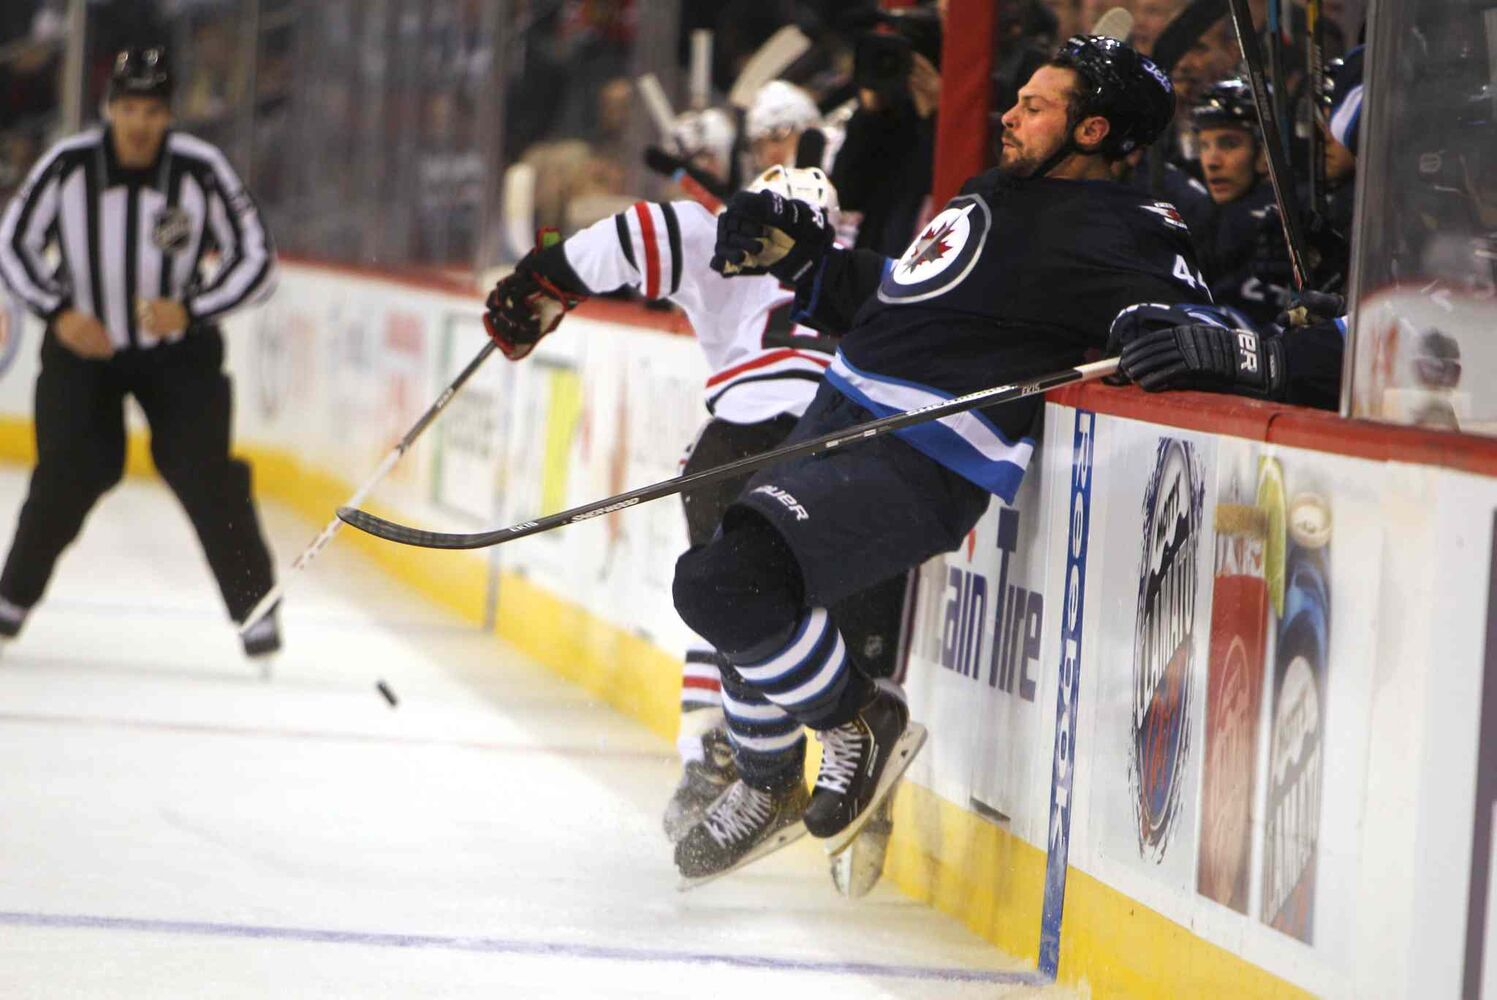 Zach Bogosian gets shoved into the boards. (Ruth Bonneville / Winnipeg Free Press)